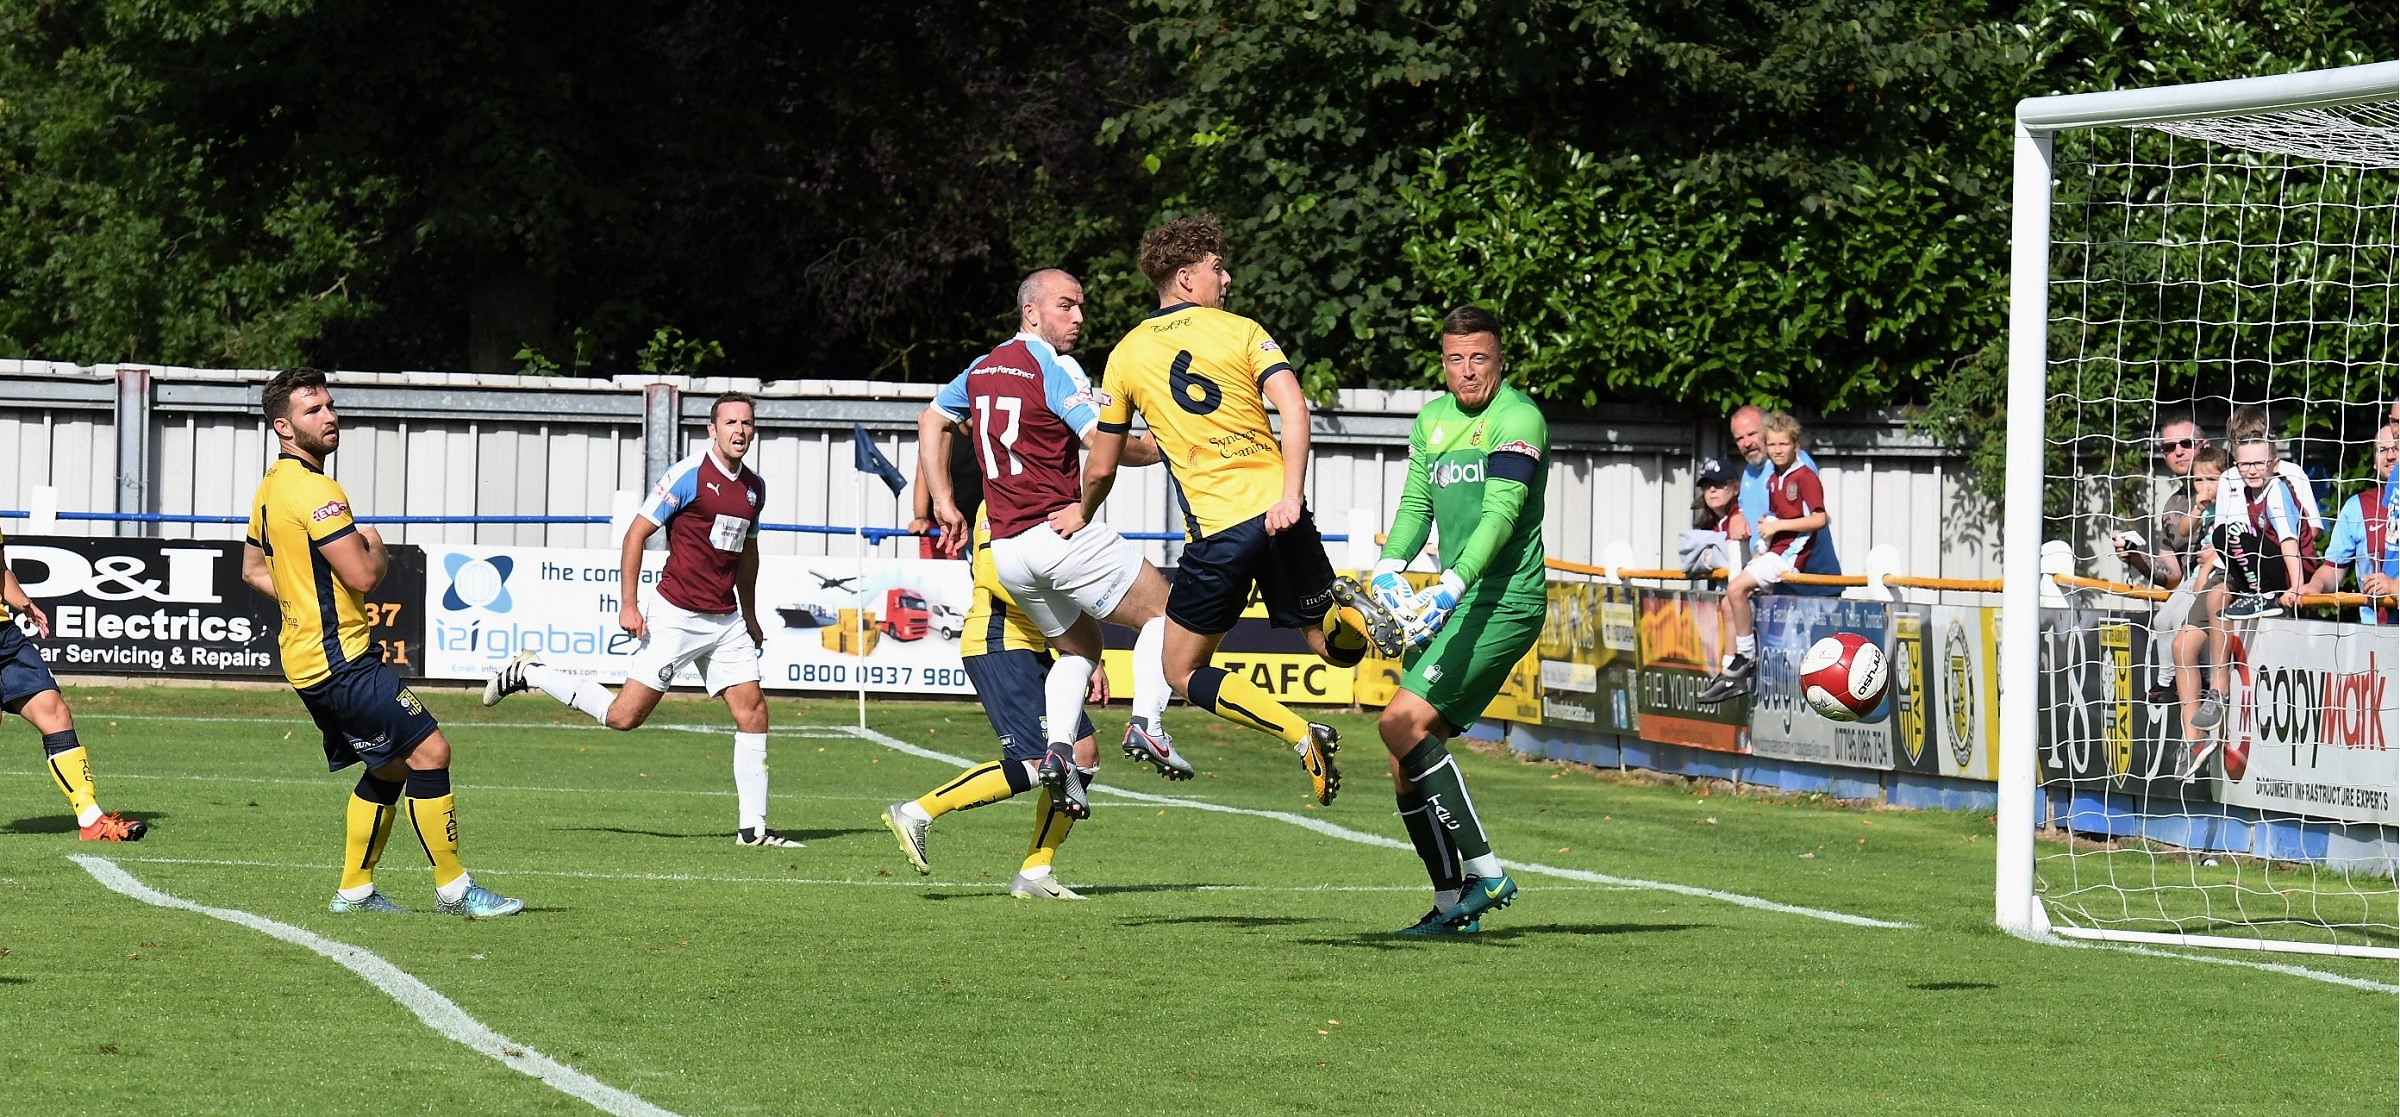 Tadcaster Albion 0-0 South Shields: Mariners draw penultimate friendly